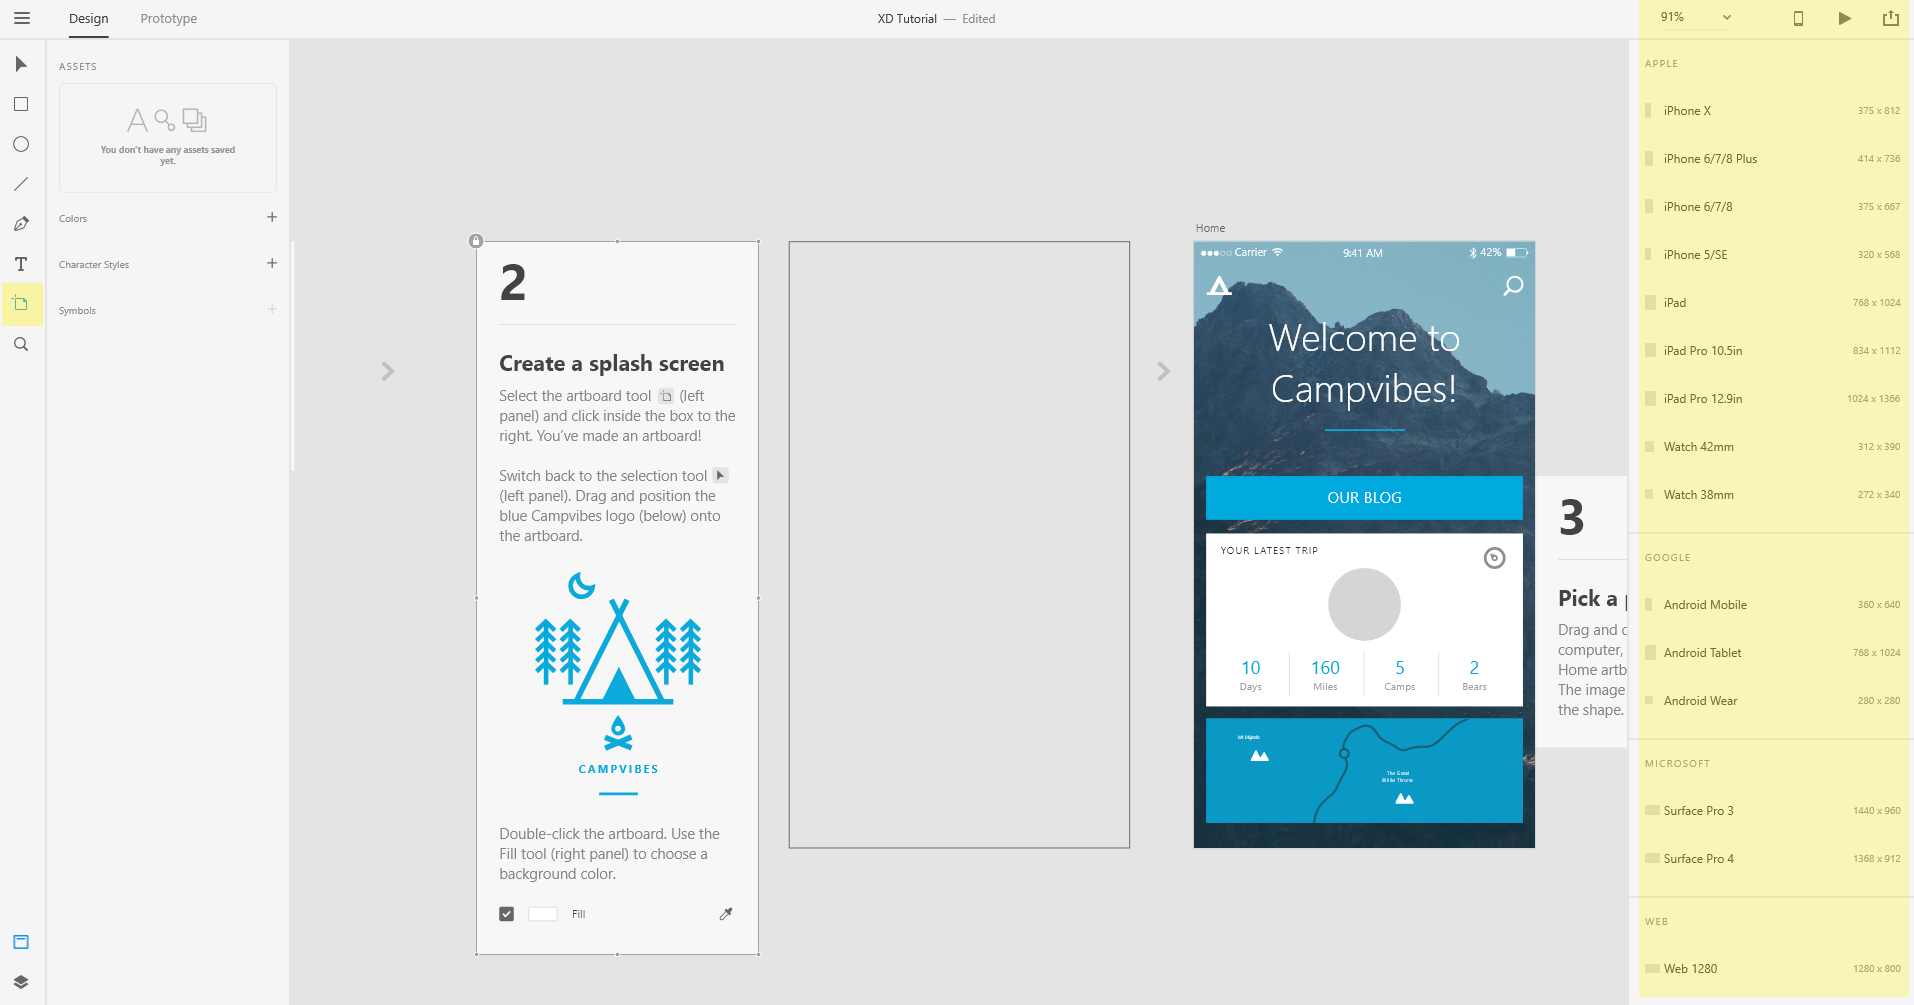 Learning The Basics Of Adobe Xd In One Hour Drill Medium